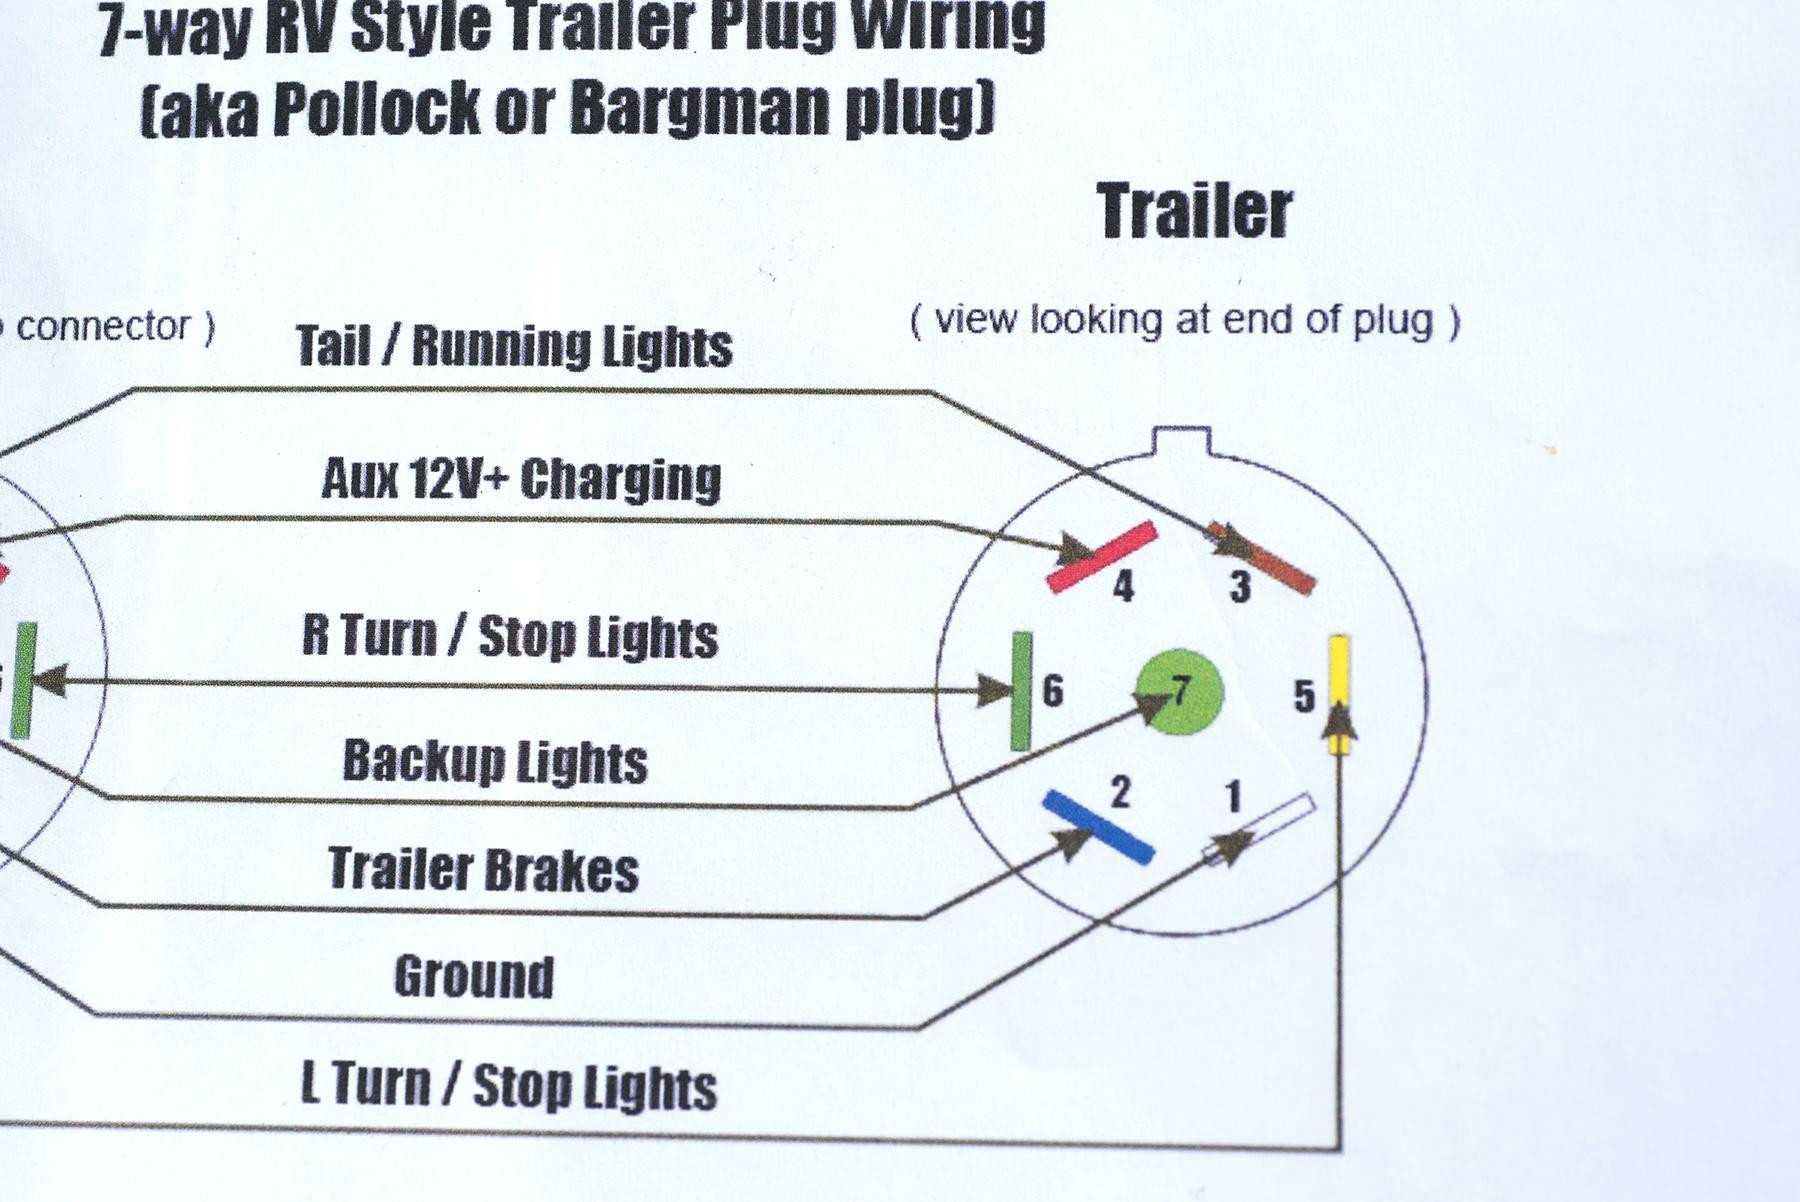 Way Trailer Plug Wiring Diagram Gmc Recent Trailer Brake Controller - Phillips Trailer Plug Wiring Diagram